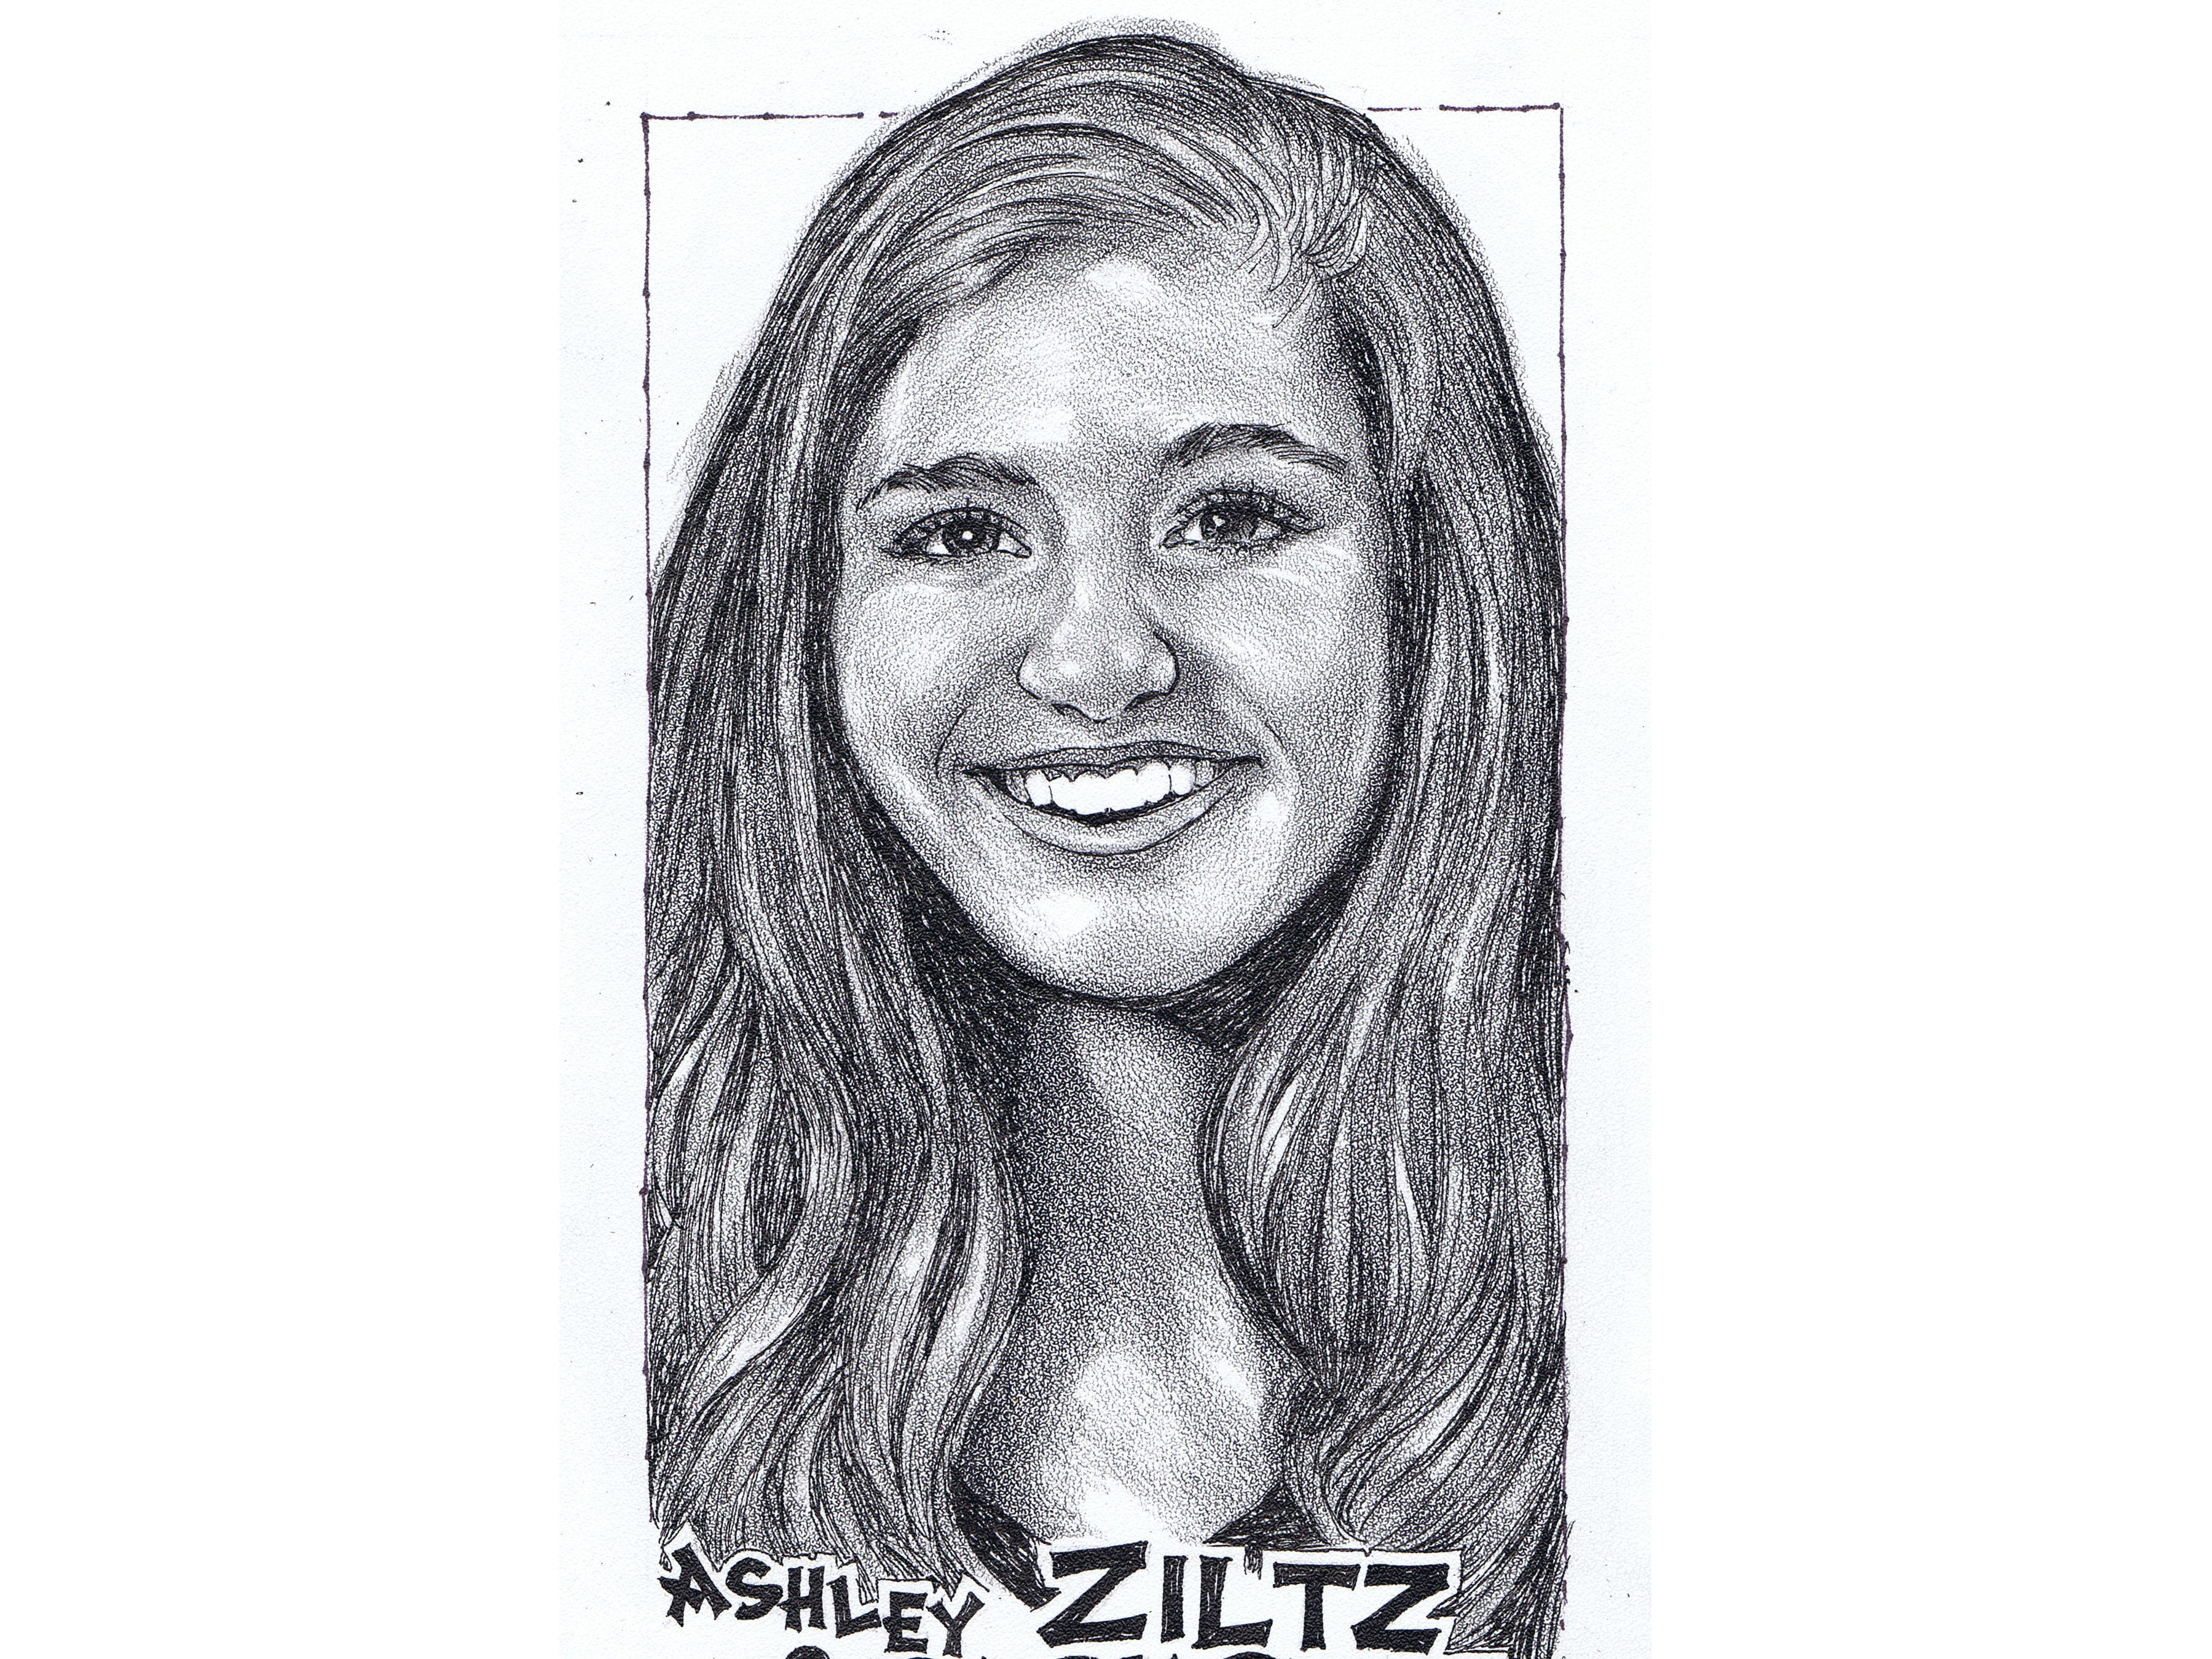 Ashley Ziltz, Park Ridge volleyball